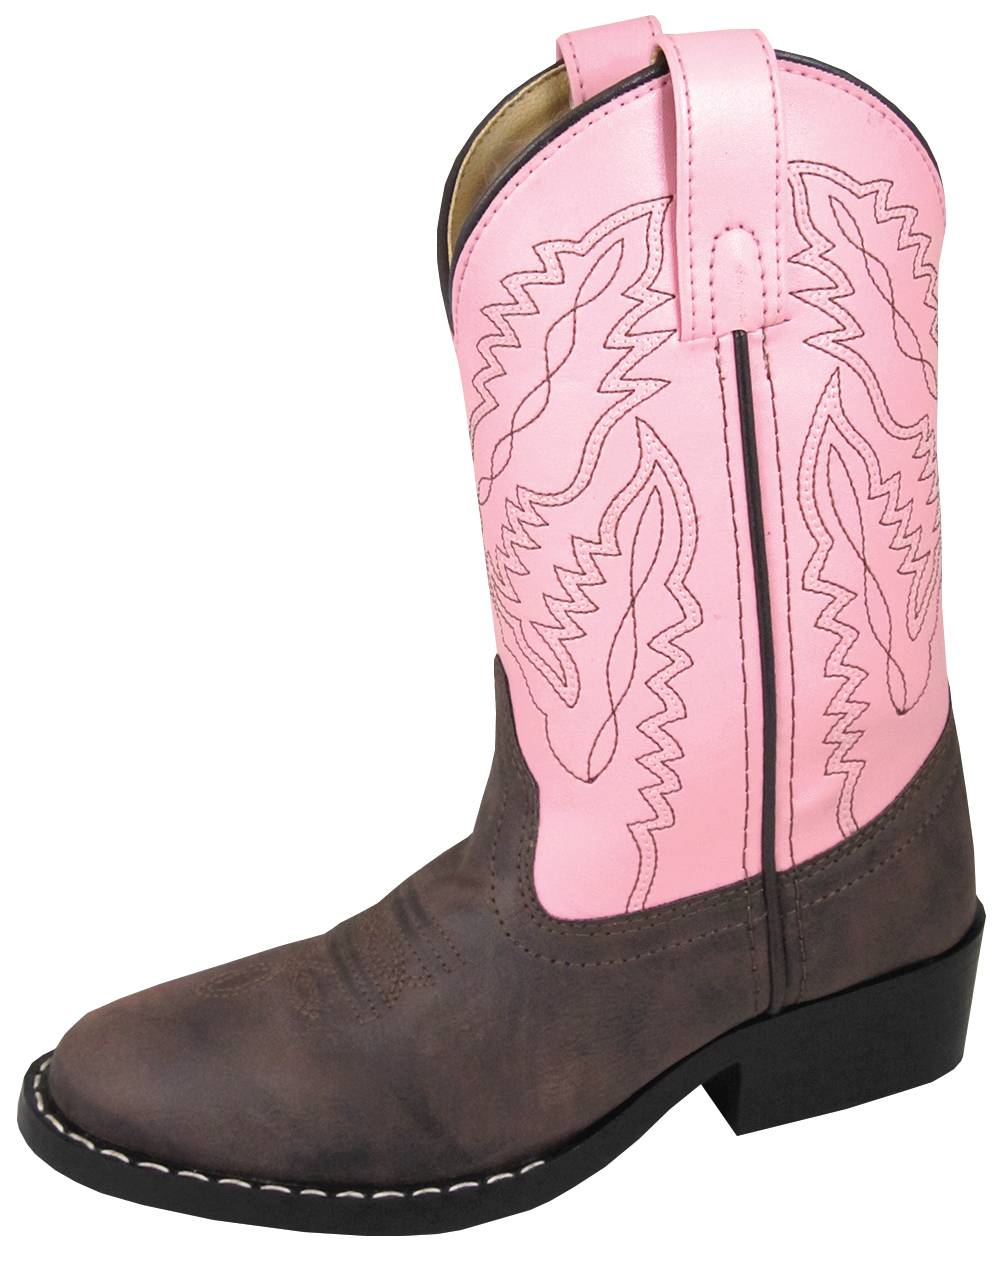 Smoky Mountain Toddler Monterey Western Boots - Brown/Pink